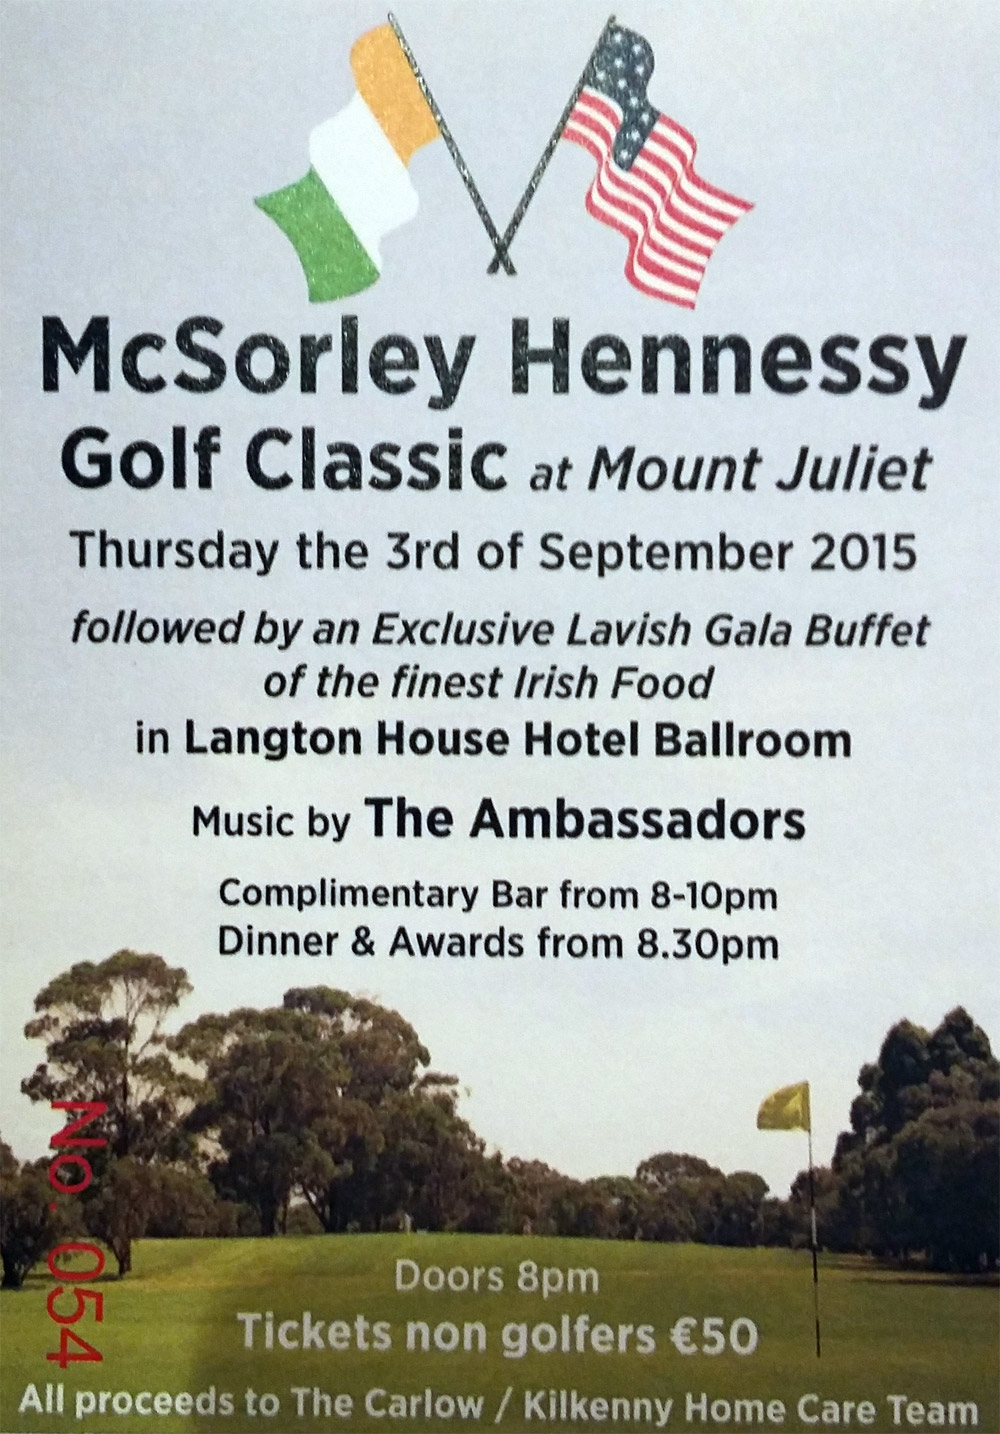 McSorley Hennessy Golf Classic